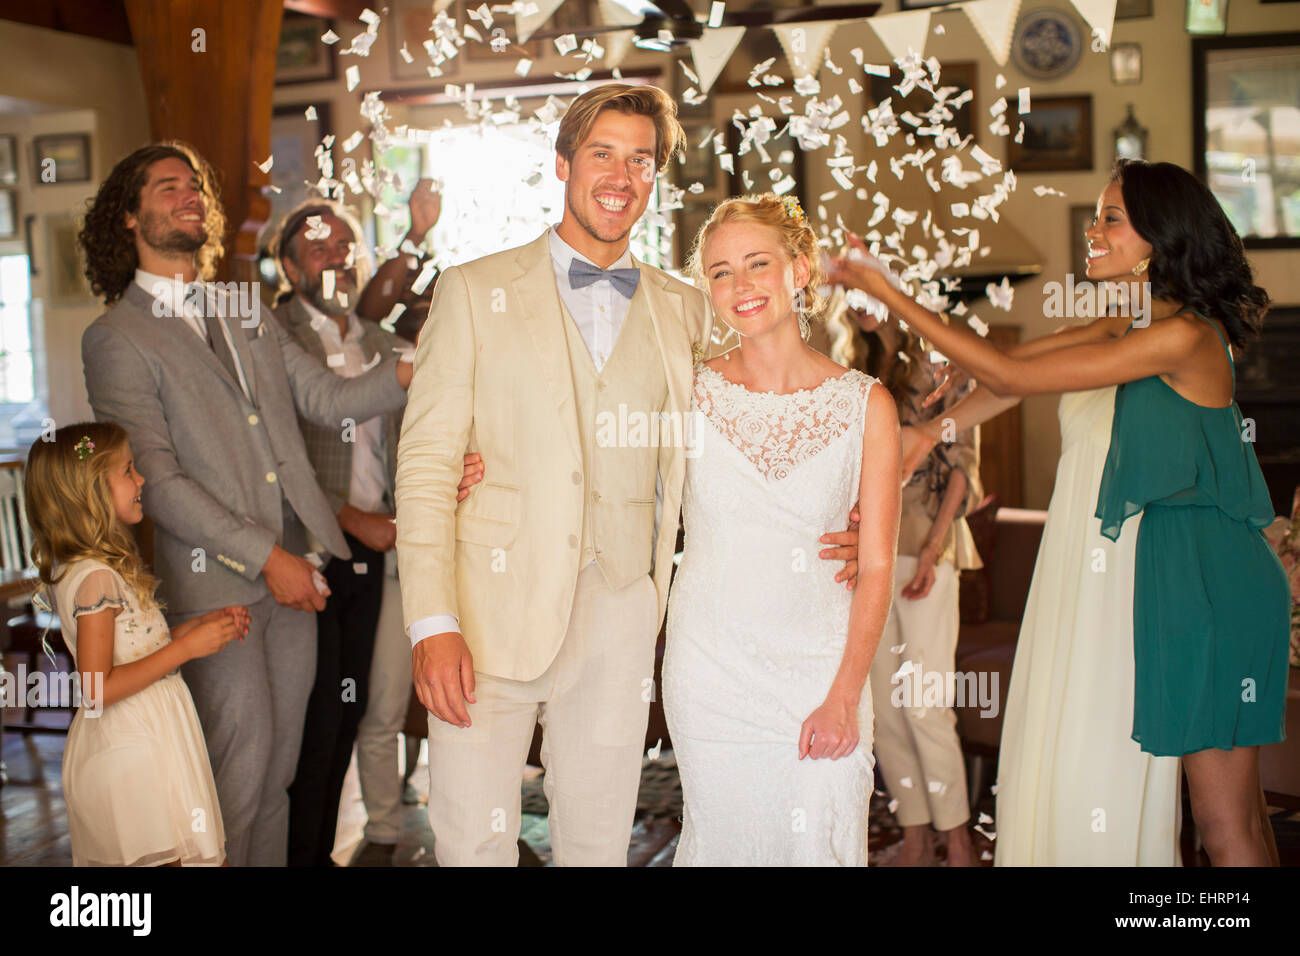 Portrait of smiling young couple standing in falling confetti during wedding reception Stock Photo